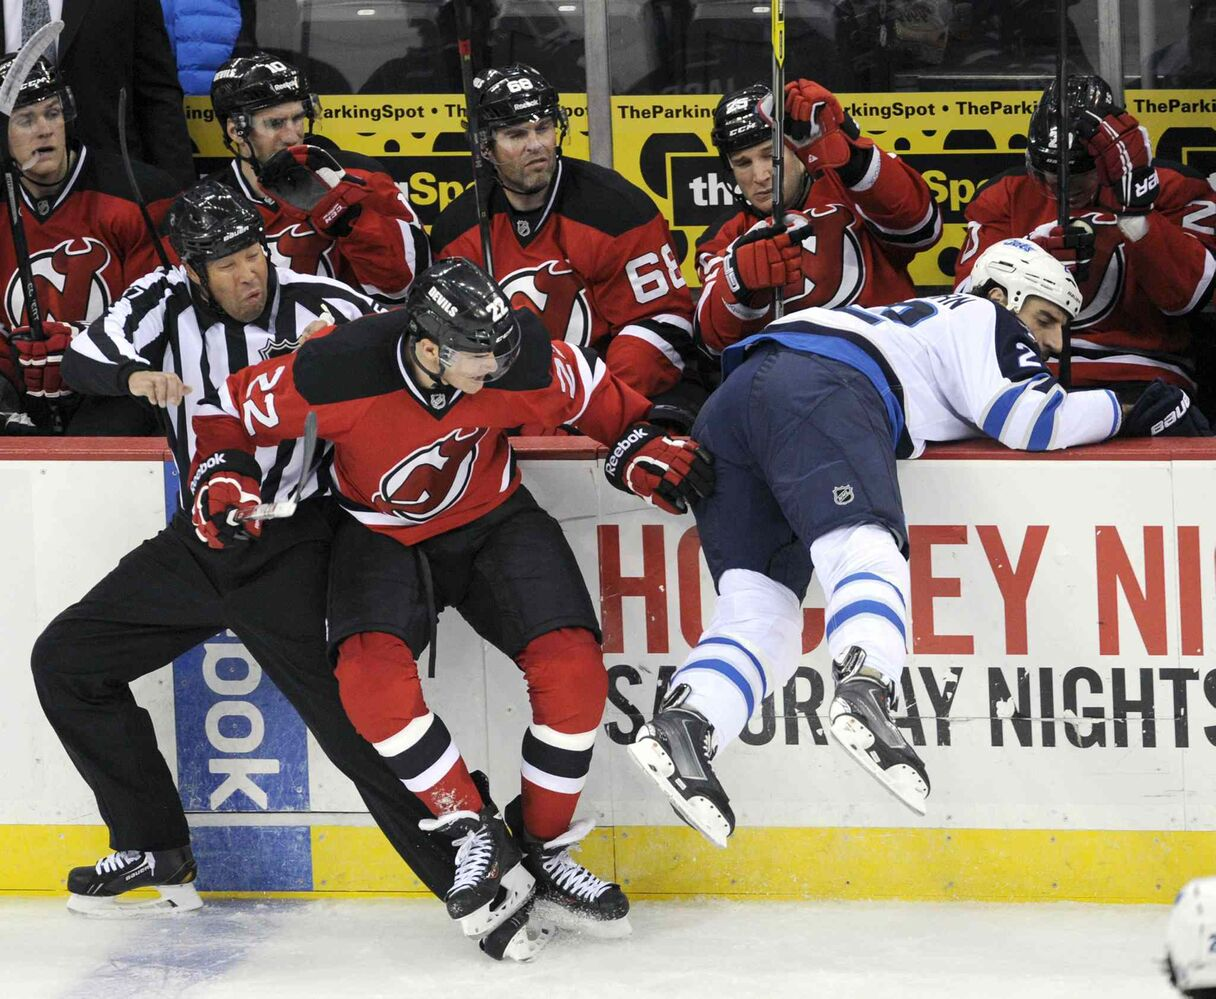 New Jersey Devils' Eric Gelinas (22) collides with linesman Jay Sharrers after checking Winnipeg Jets forward Chris Thorburn into the boards during the third period. (BILL KOSTROUN / THE ASSOCIATED PRESS)